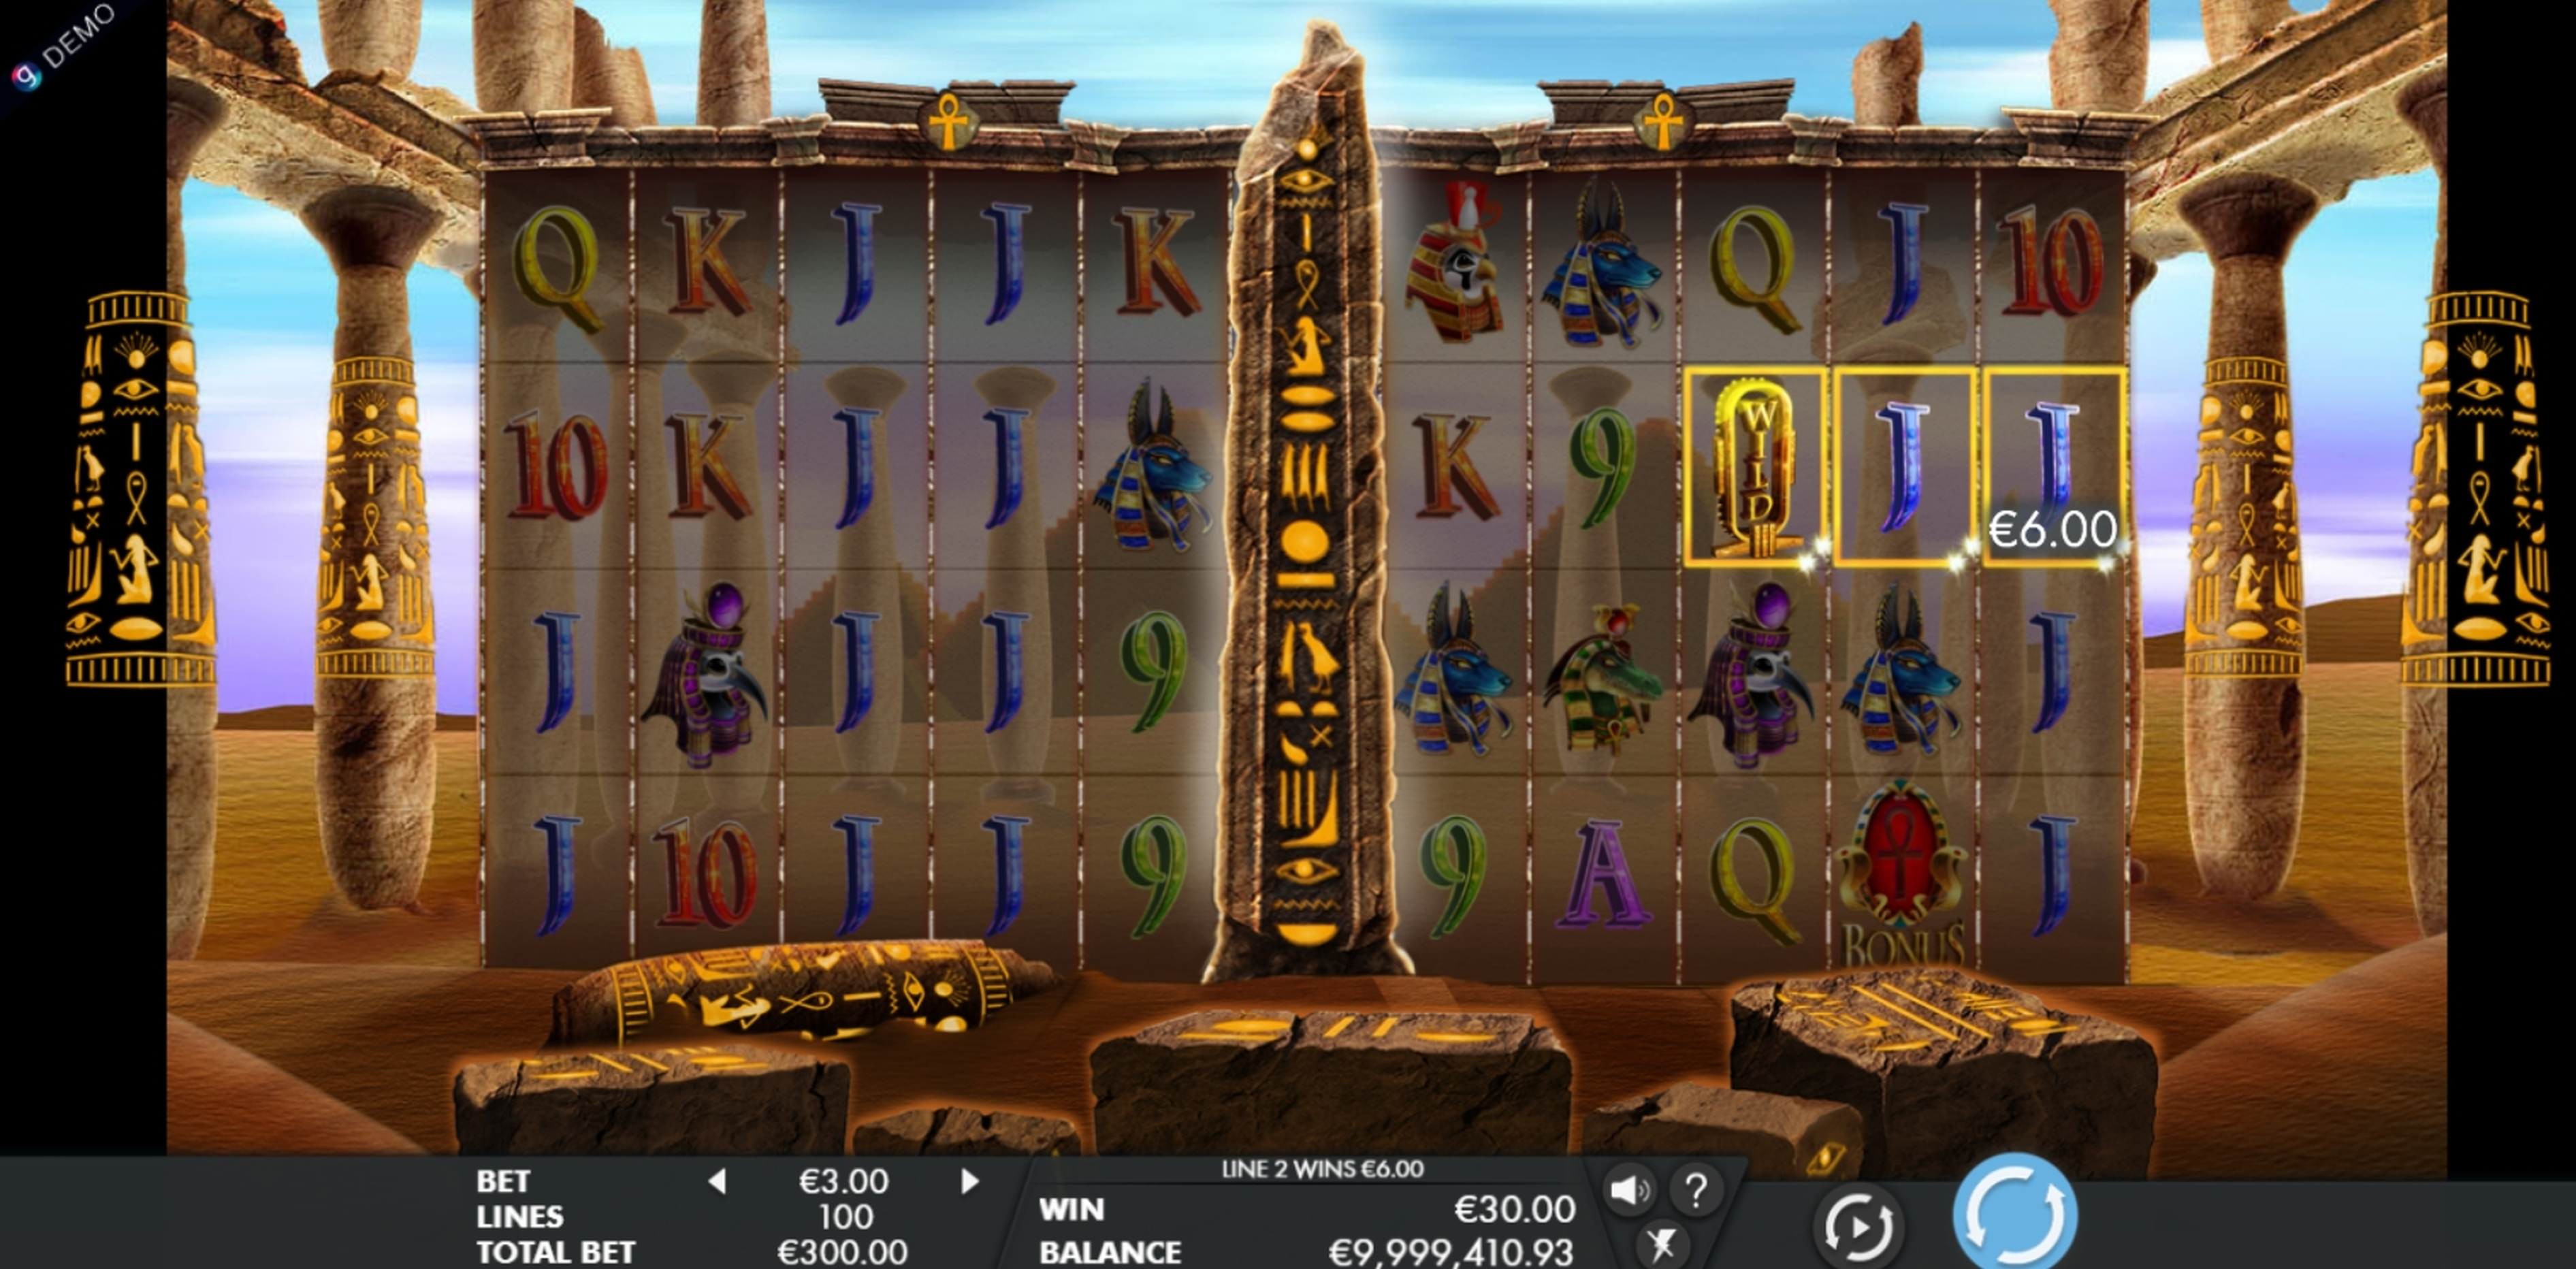 Win Money in Temple of Luxor Free Slot Game by Genesis